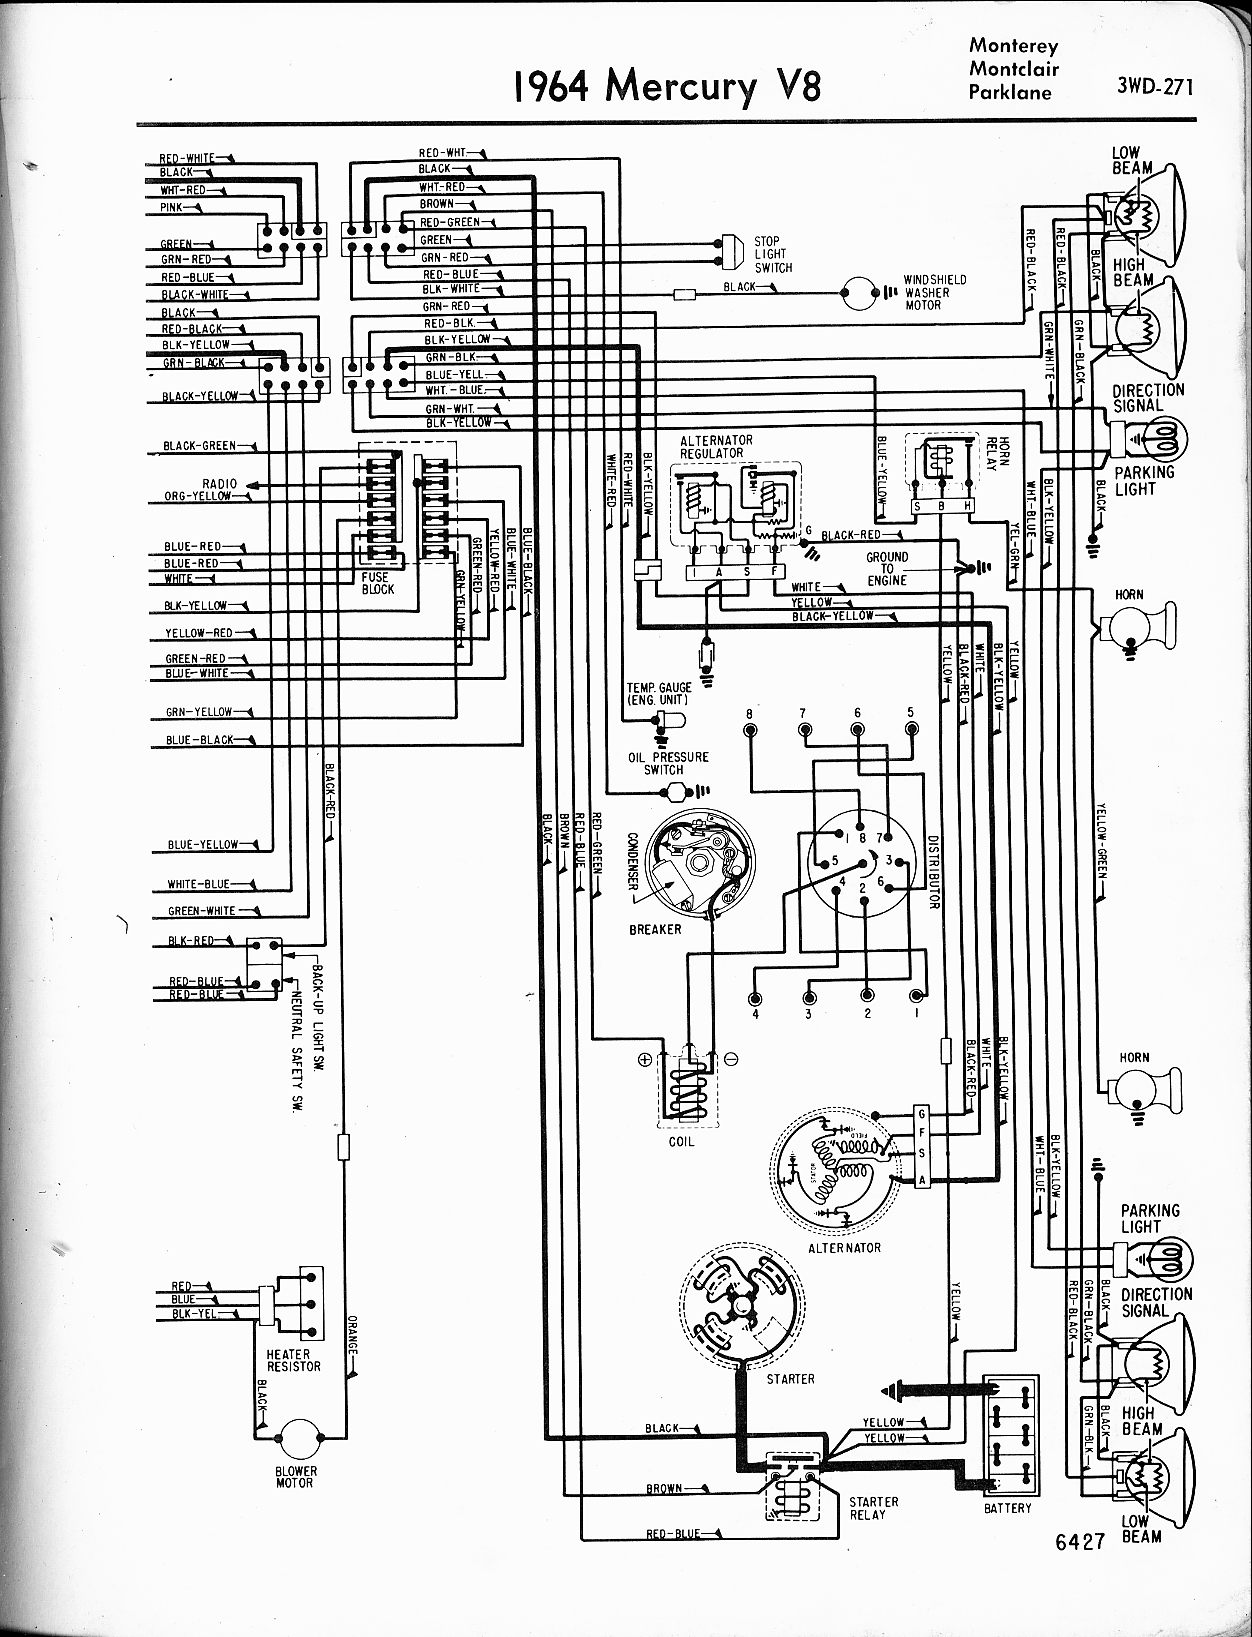 1955 thunderbird power seats wiring diagram